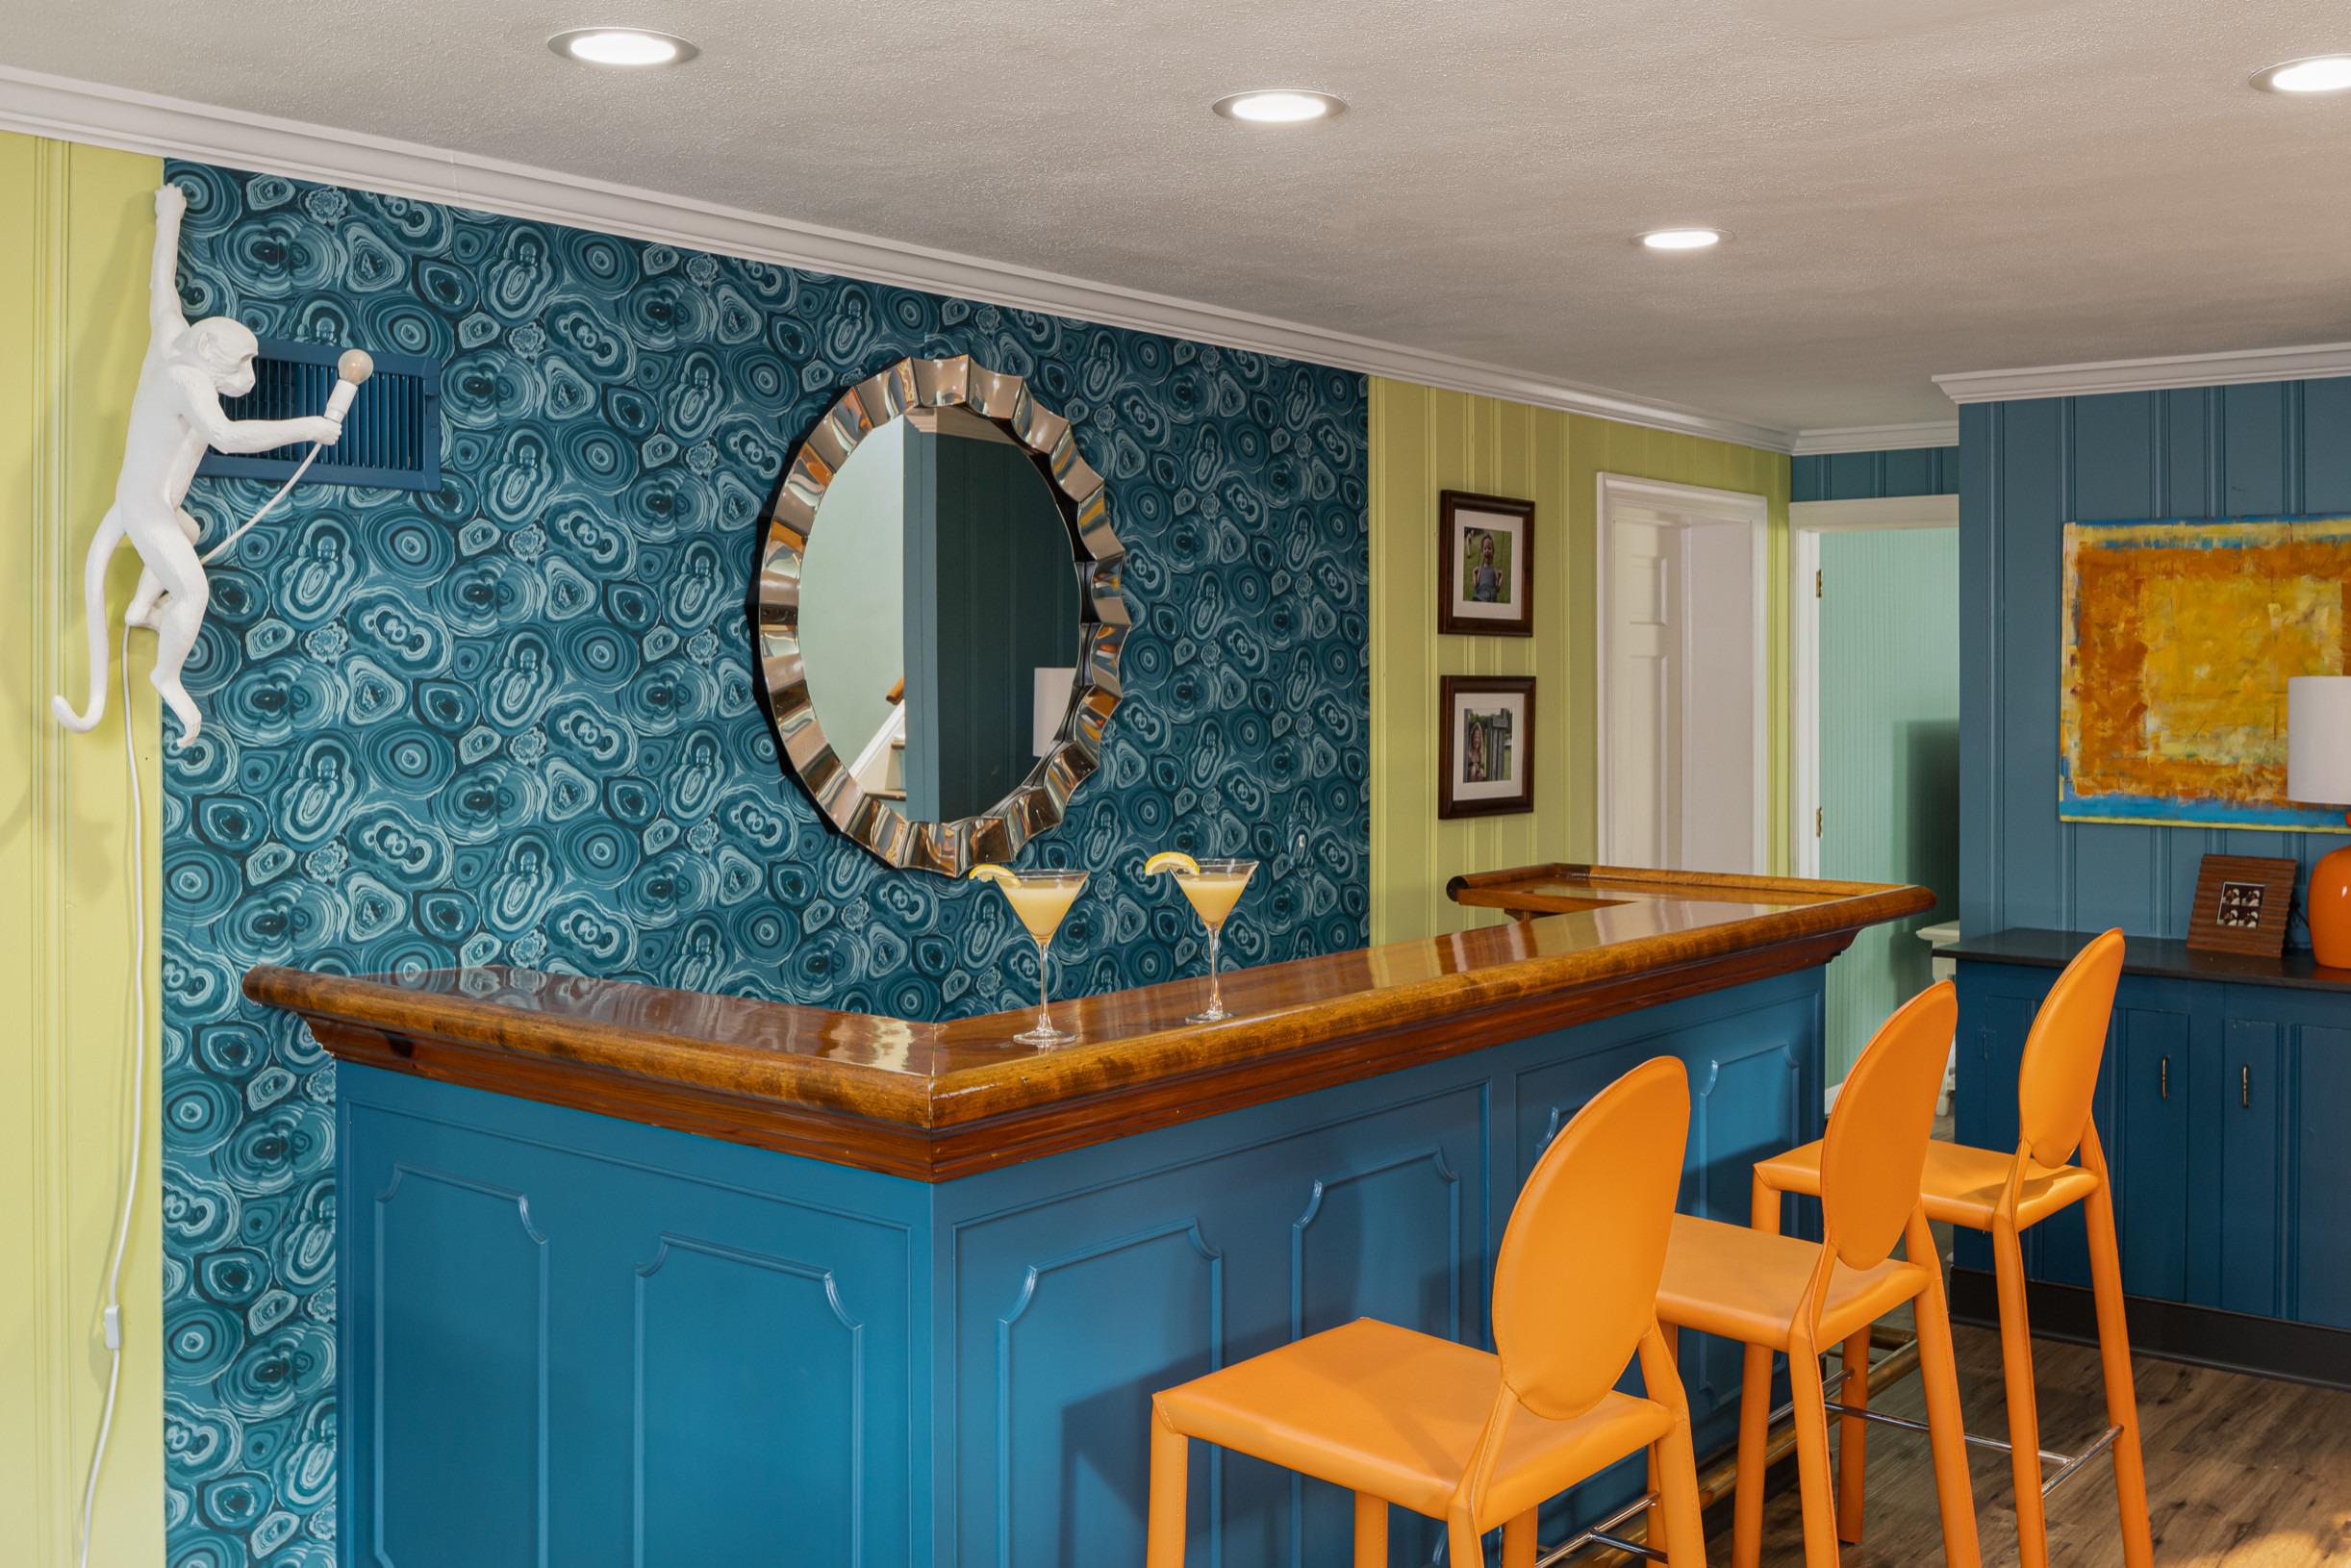 15 Stunning Eclectic Home Bar Designs You Will Envy